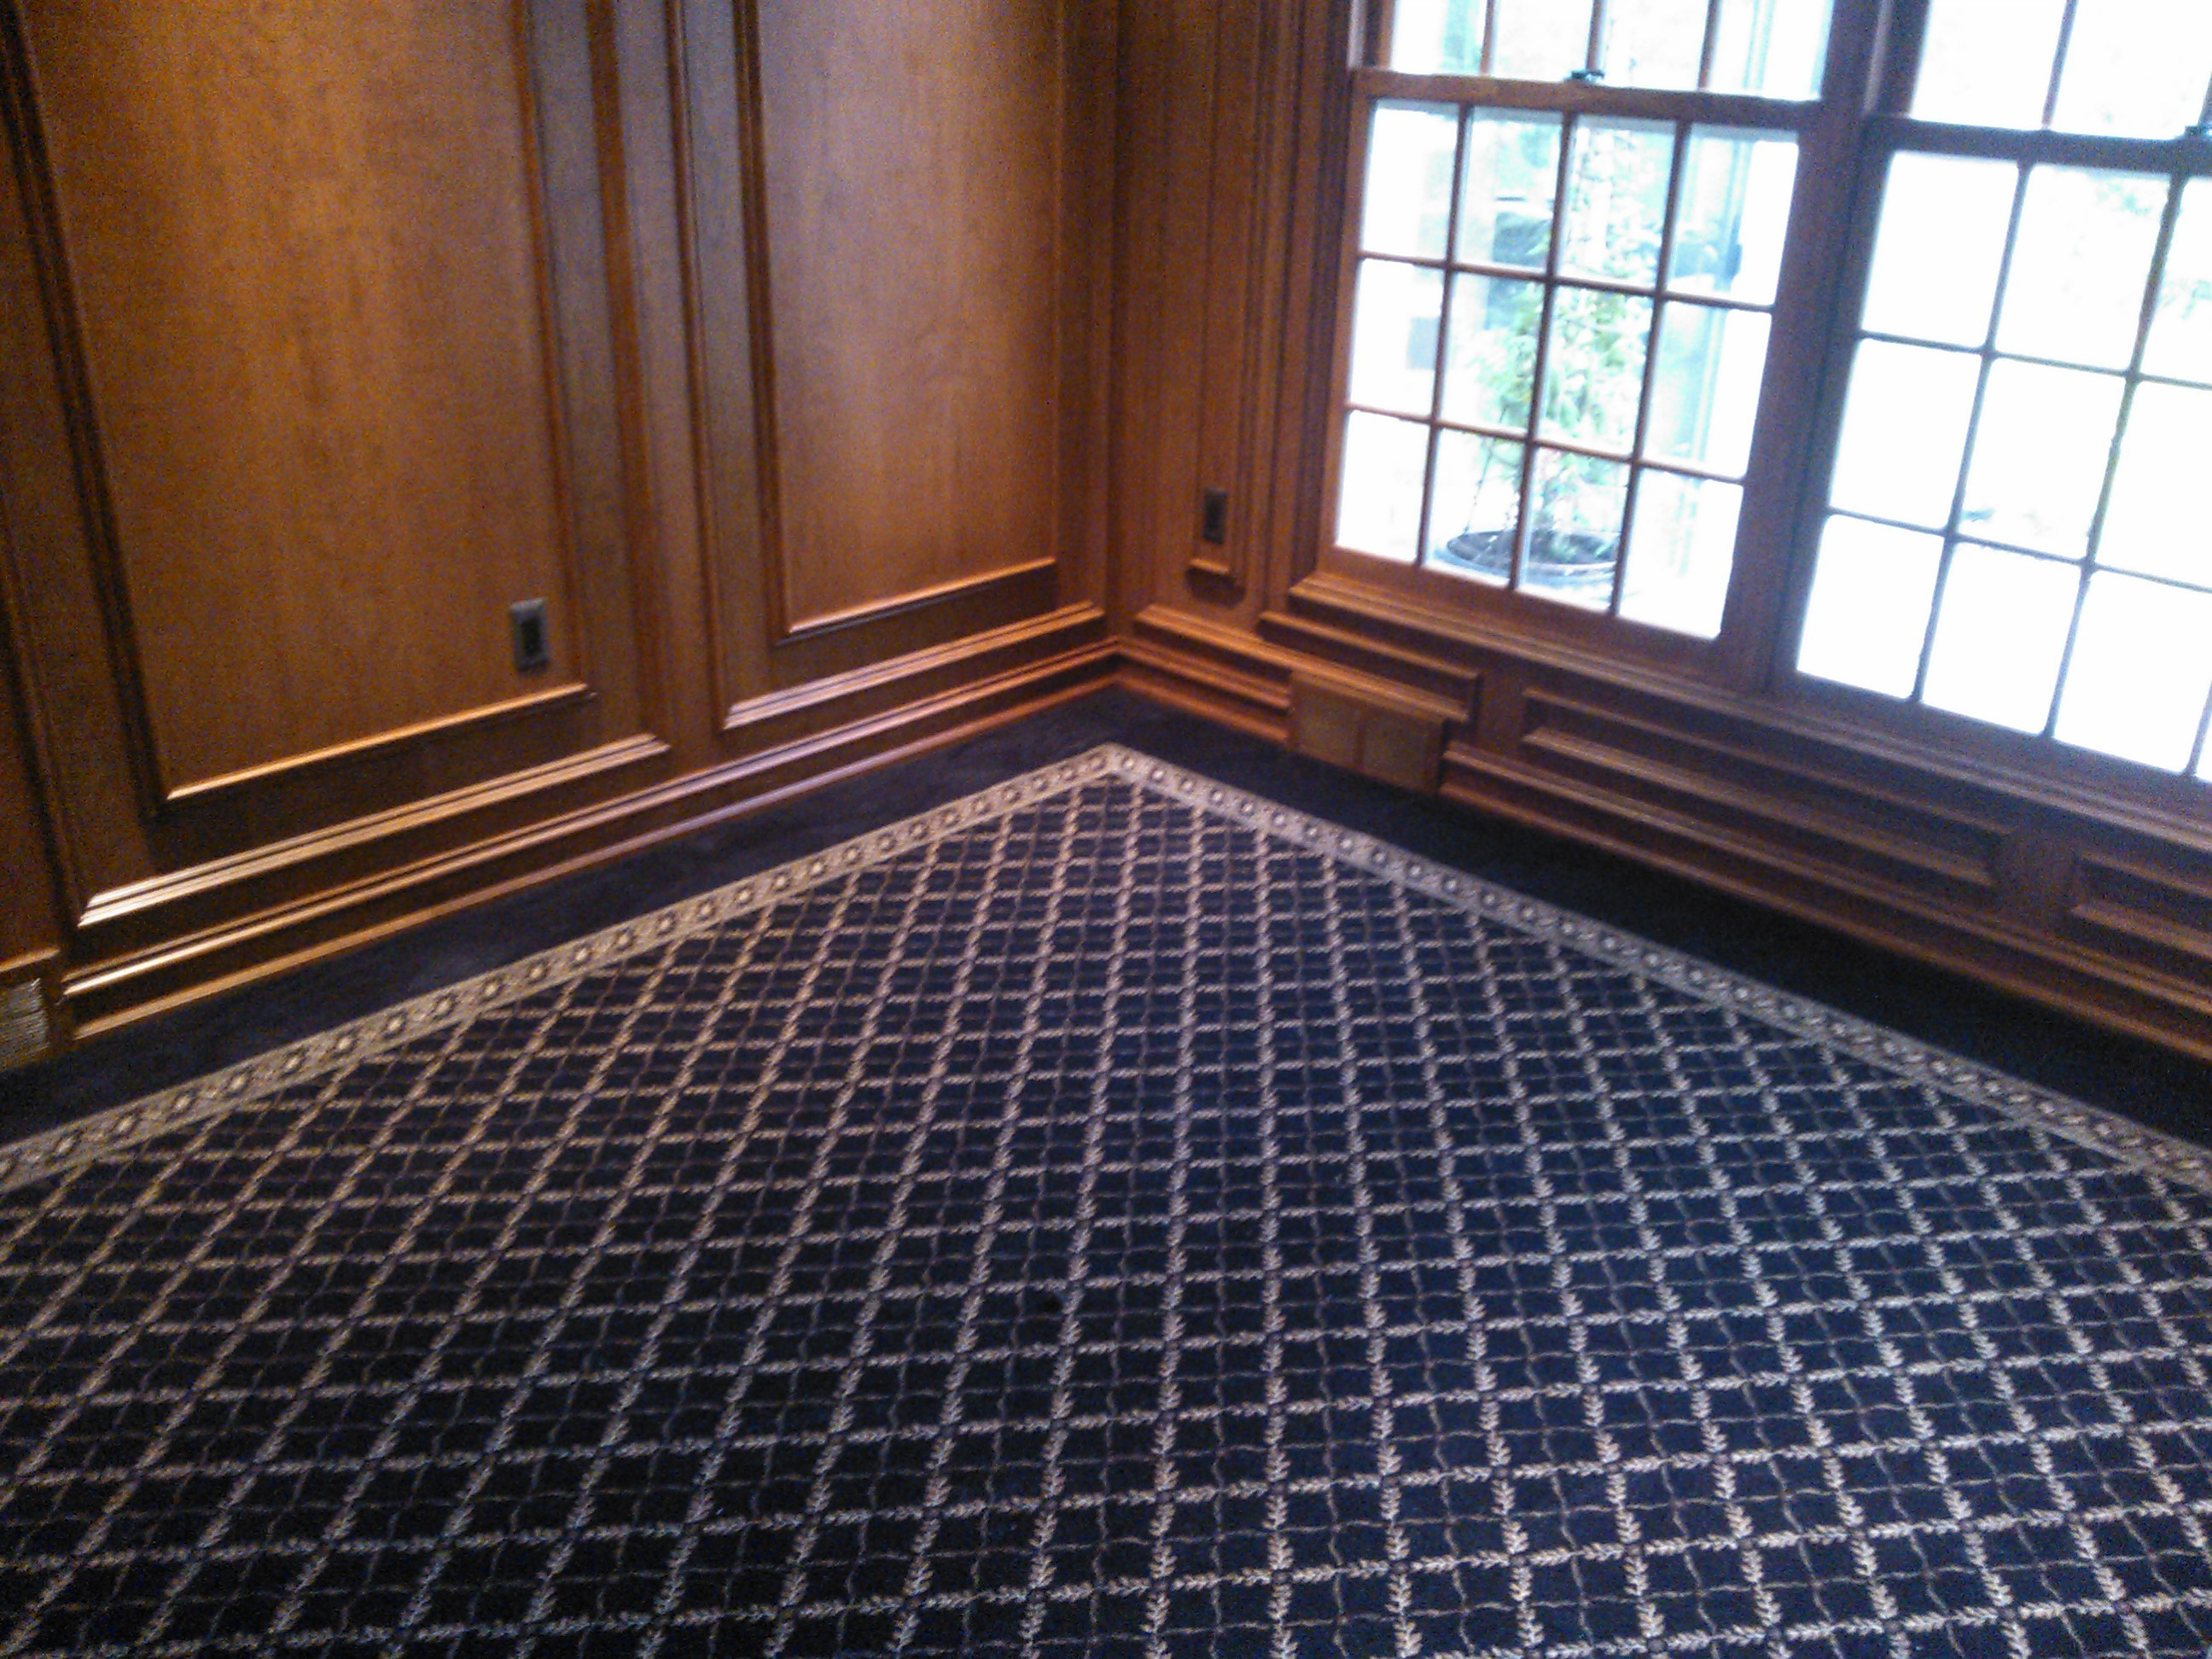 Recent Carpet Installation Project in Bloomfield Hills, Michigan